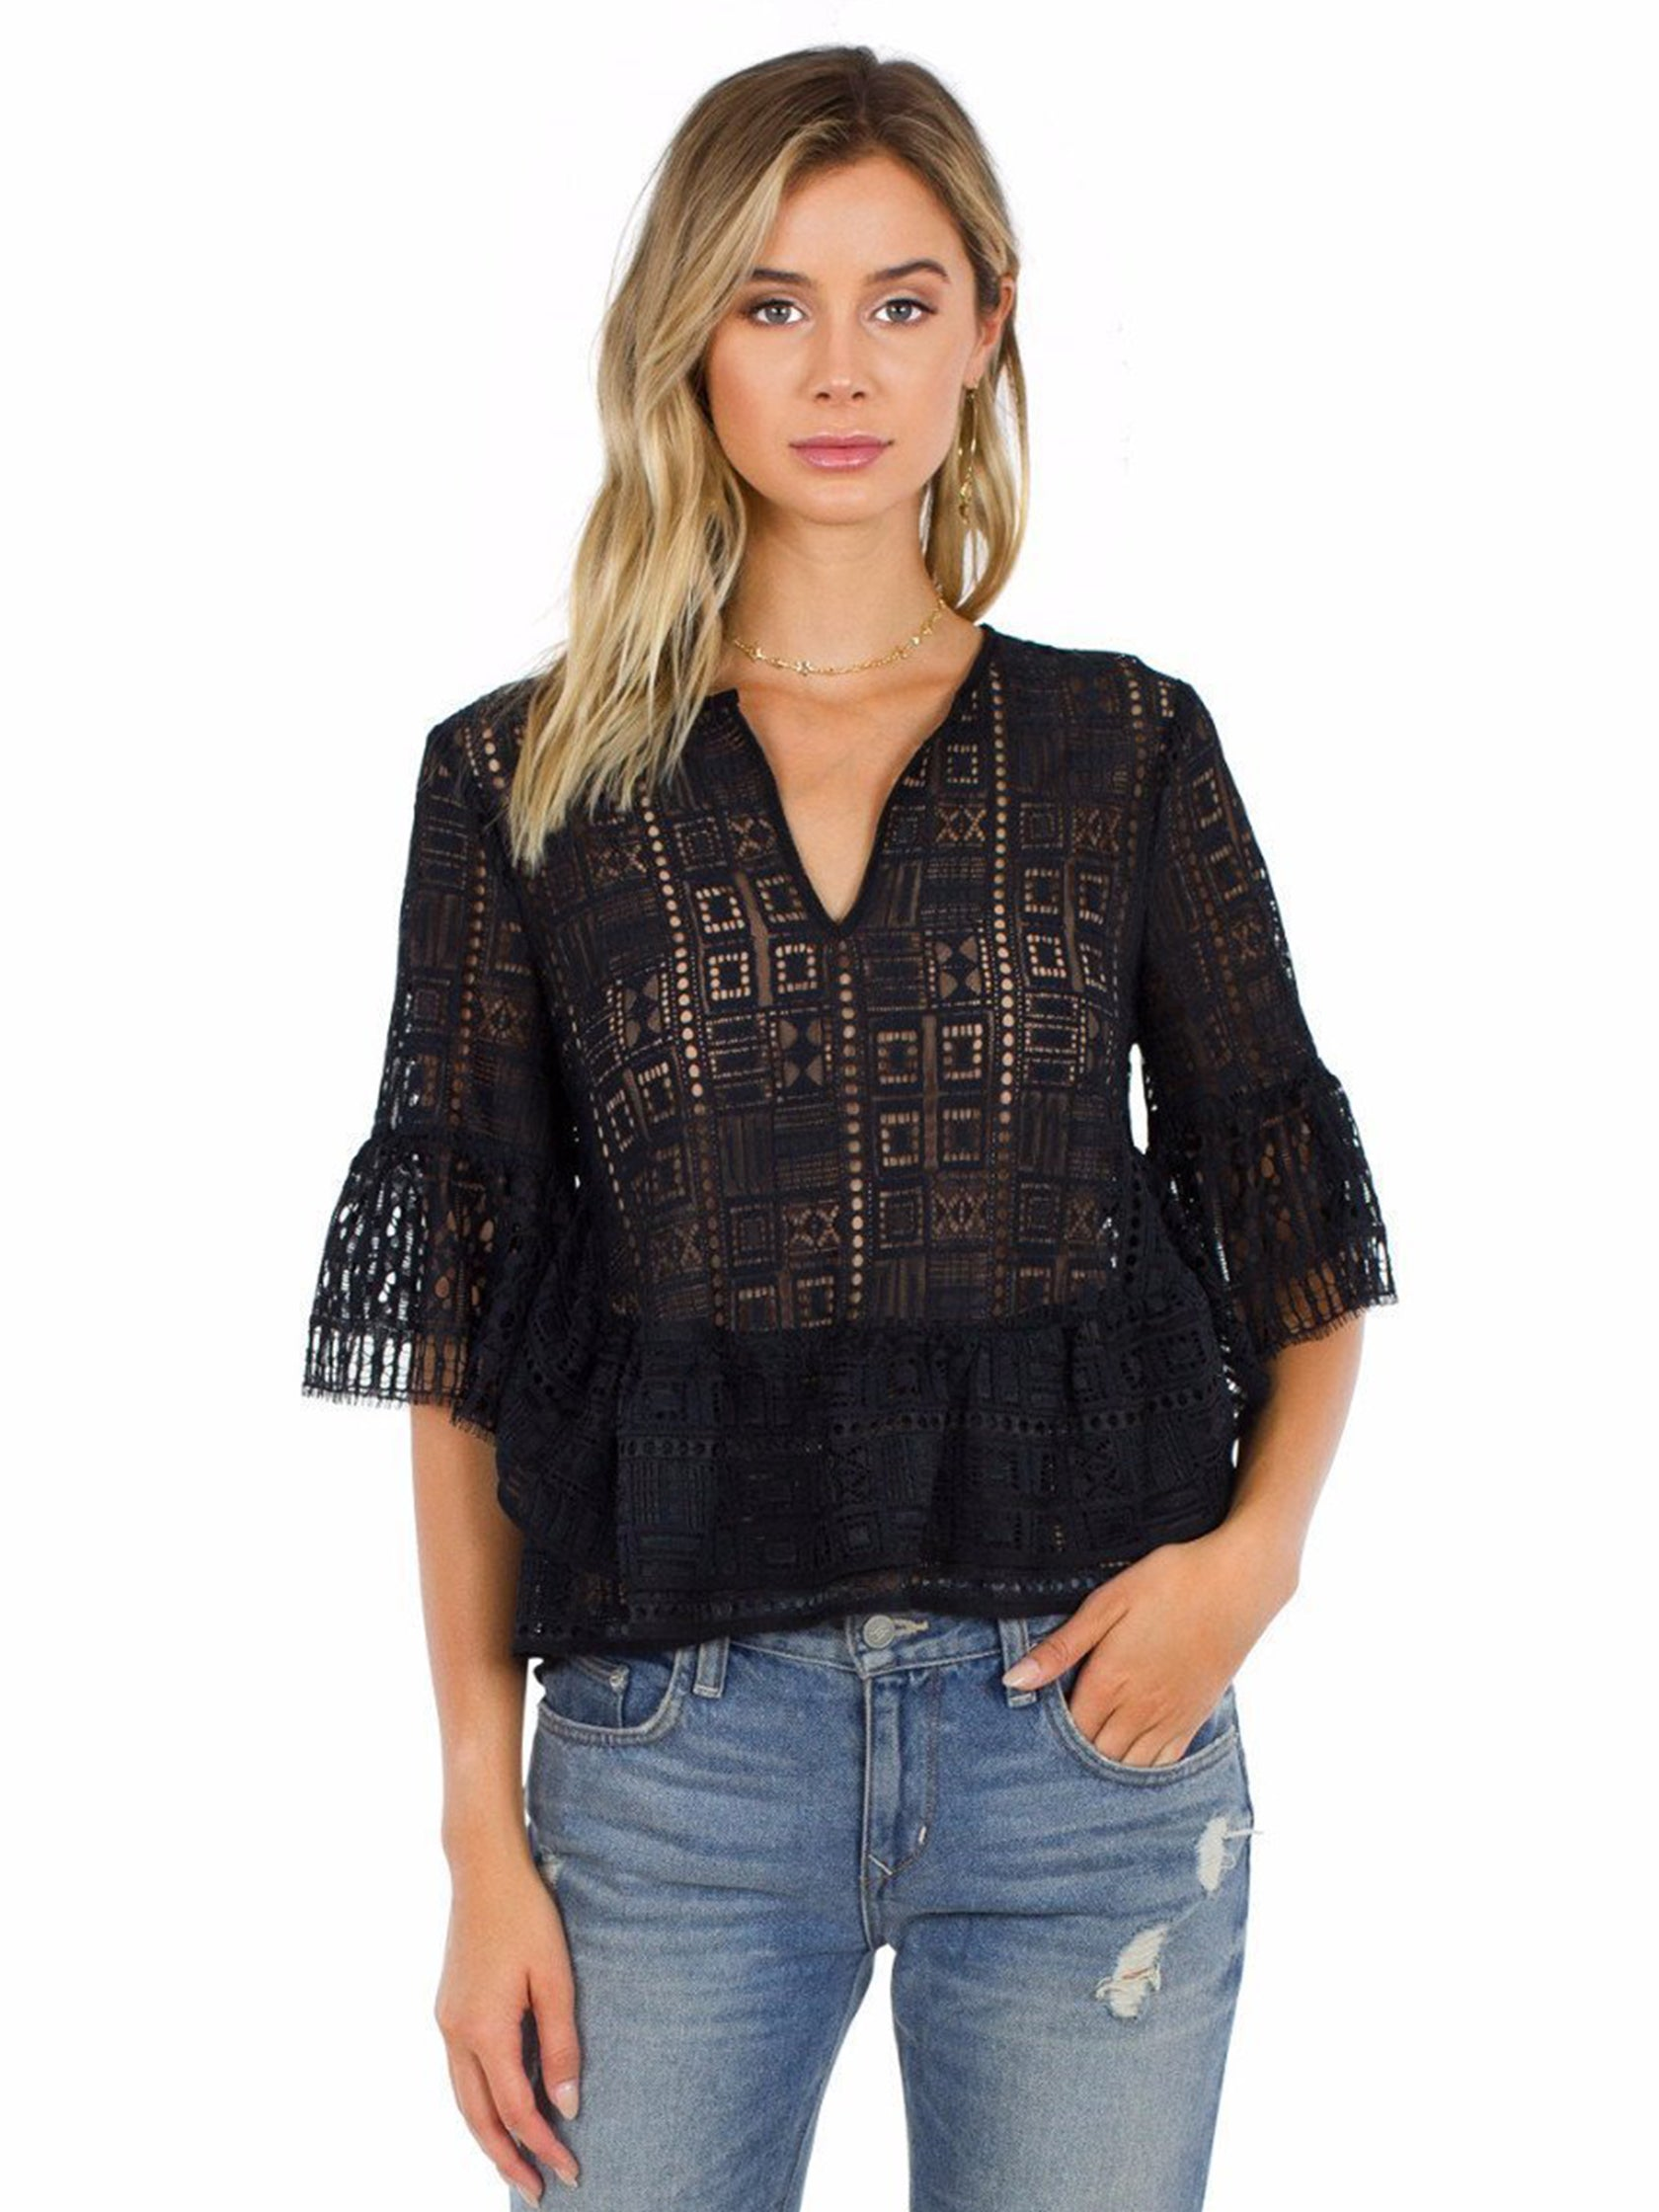 Woman wearing a top rental from BCBGMAXAZRIA called Immane Ruffled Lace Top